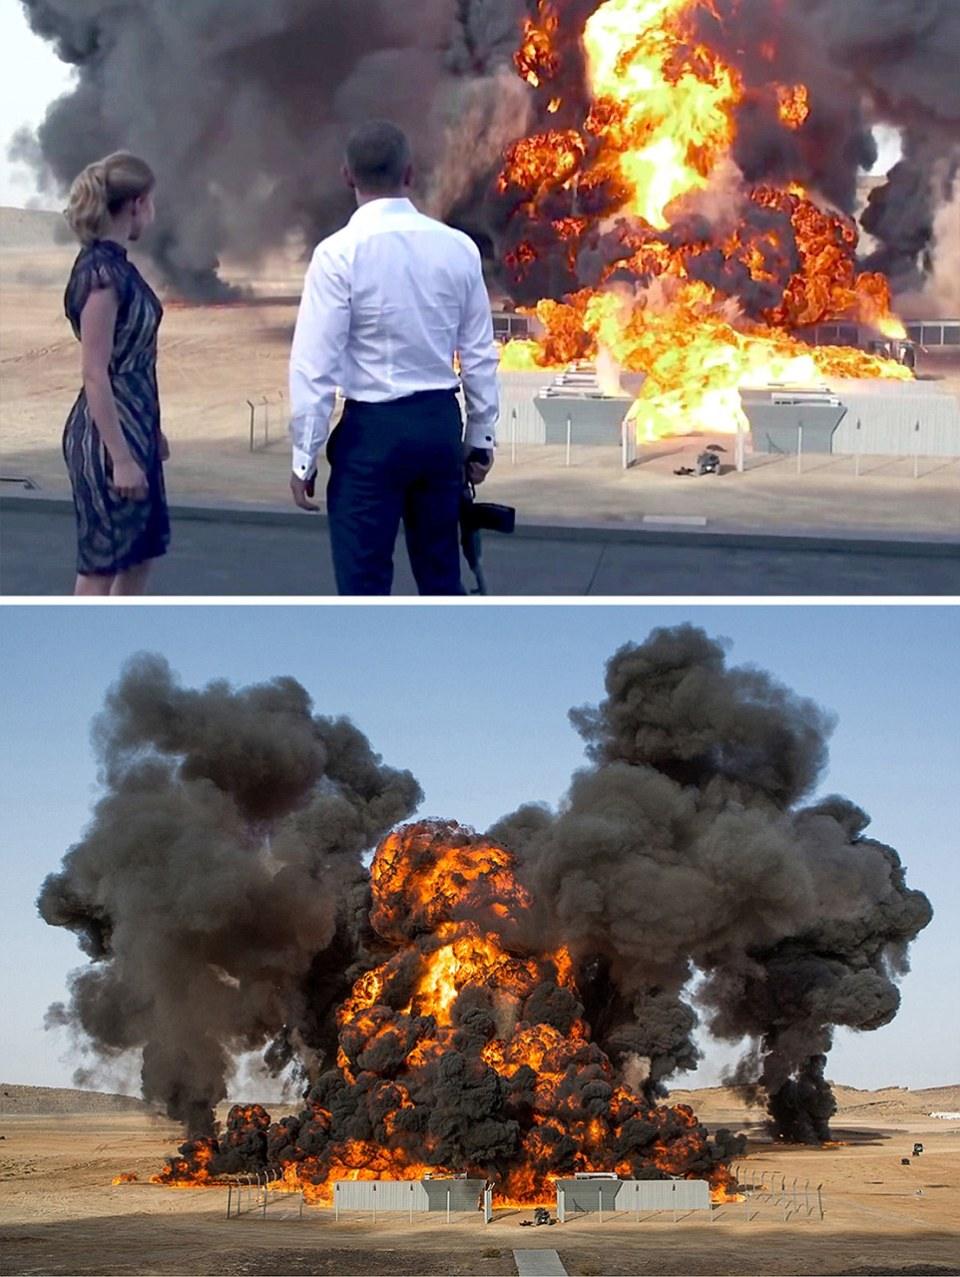 Spectre (2015) - (TOP) James Bond  (Right) with Bond girl Madeleine (Léa Seydoux) watch the demse of Blofeld's base - filmed in Erfoud , Morocco (BOTTOM) The 24th Bond film features the largest film detonation of all time, with 70 tons of TNT used. The explosion lasted 7.5 seconds. /